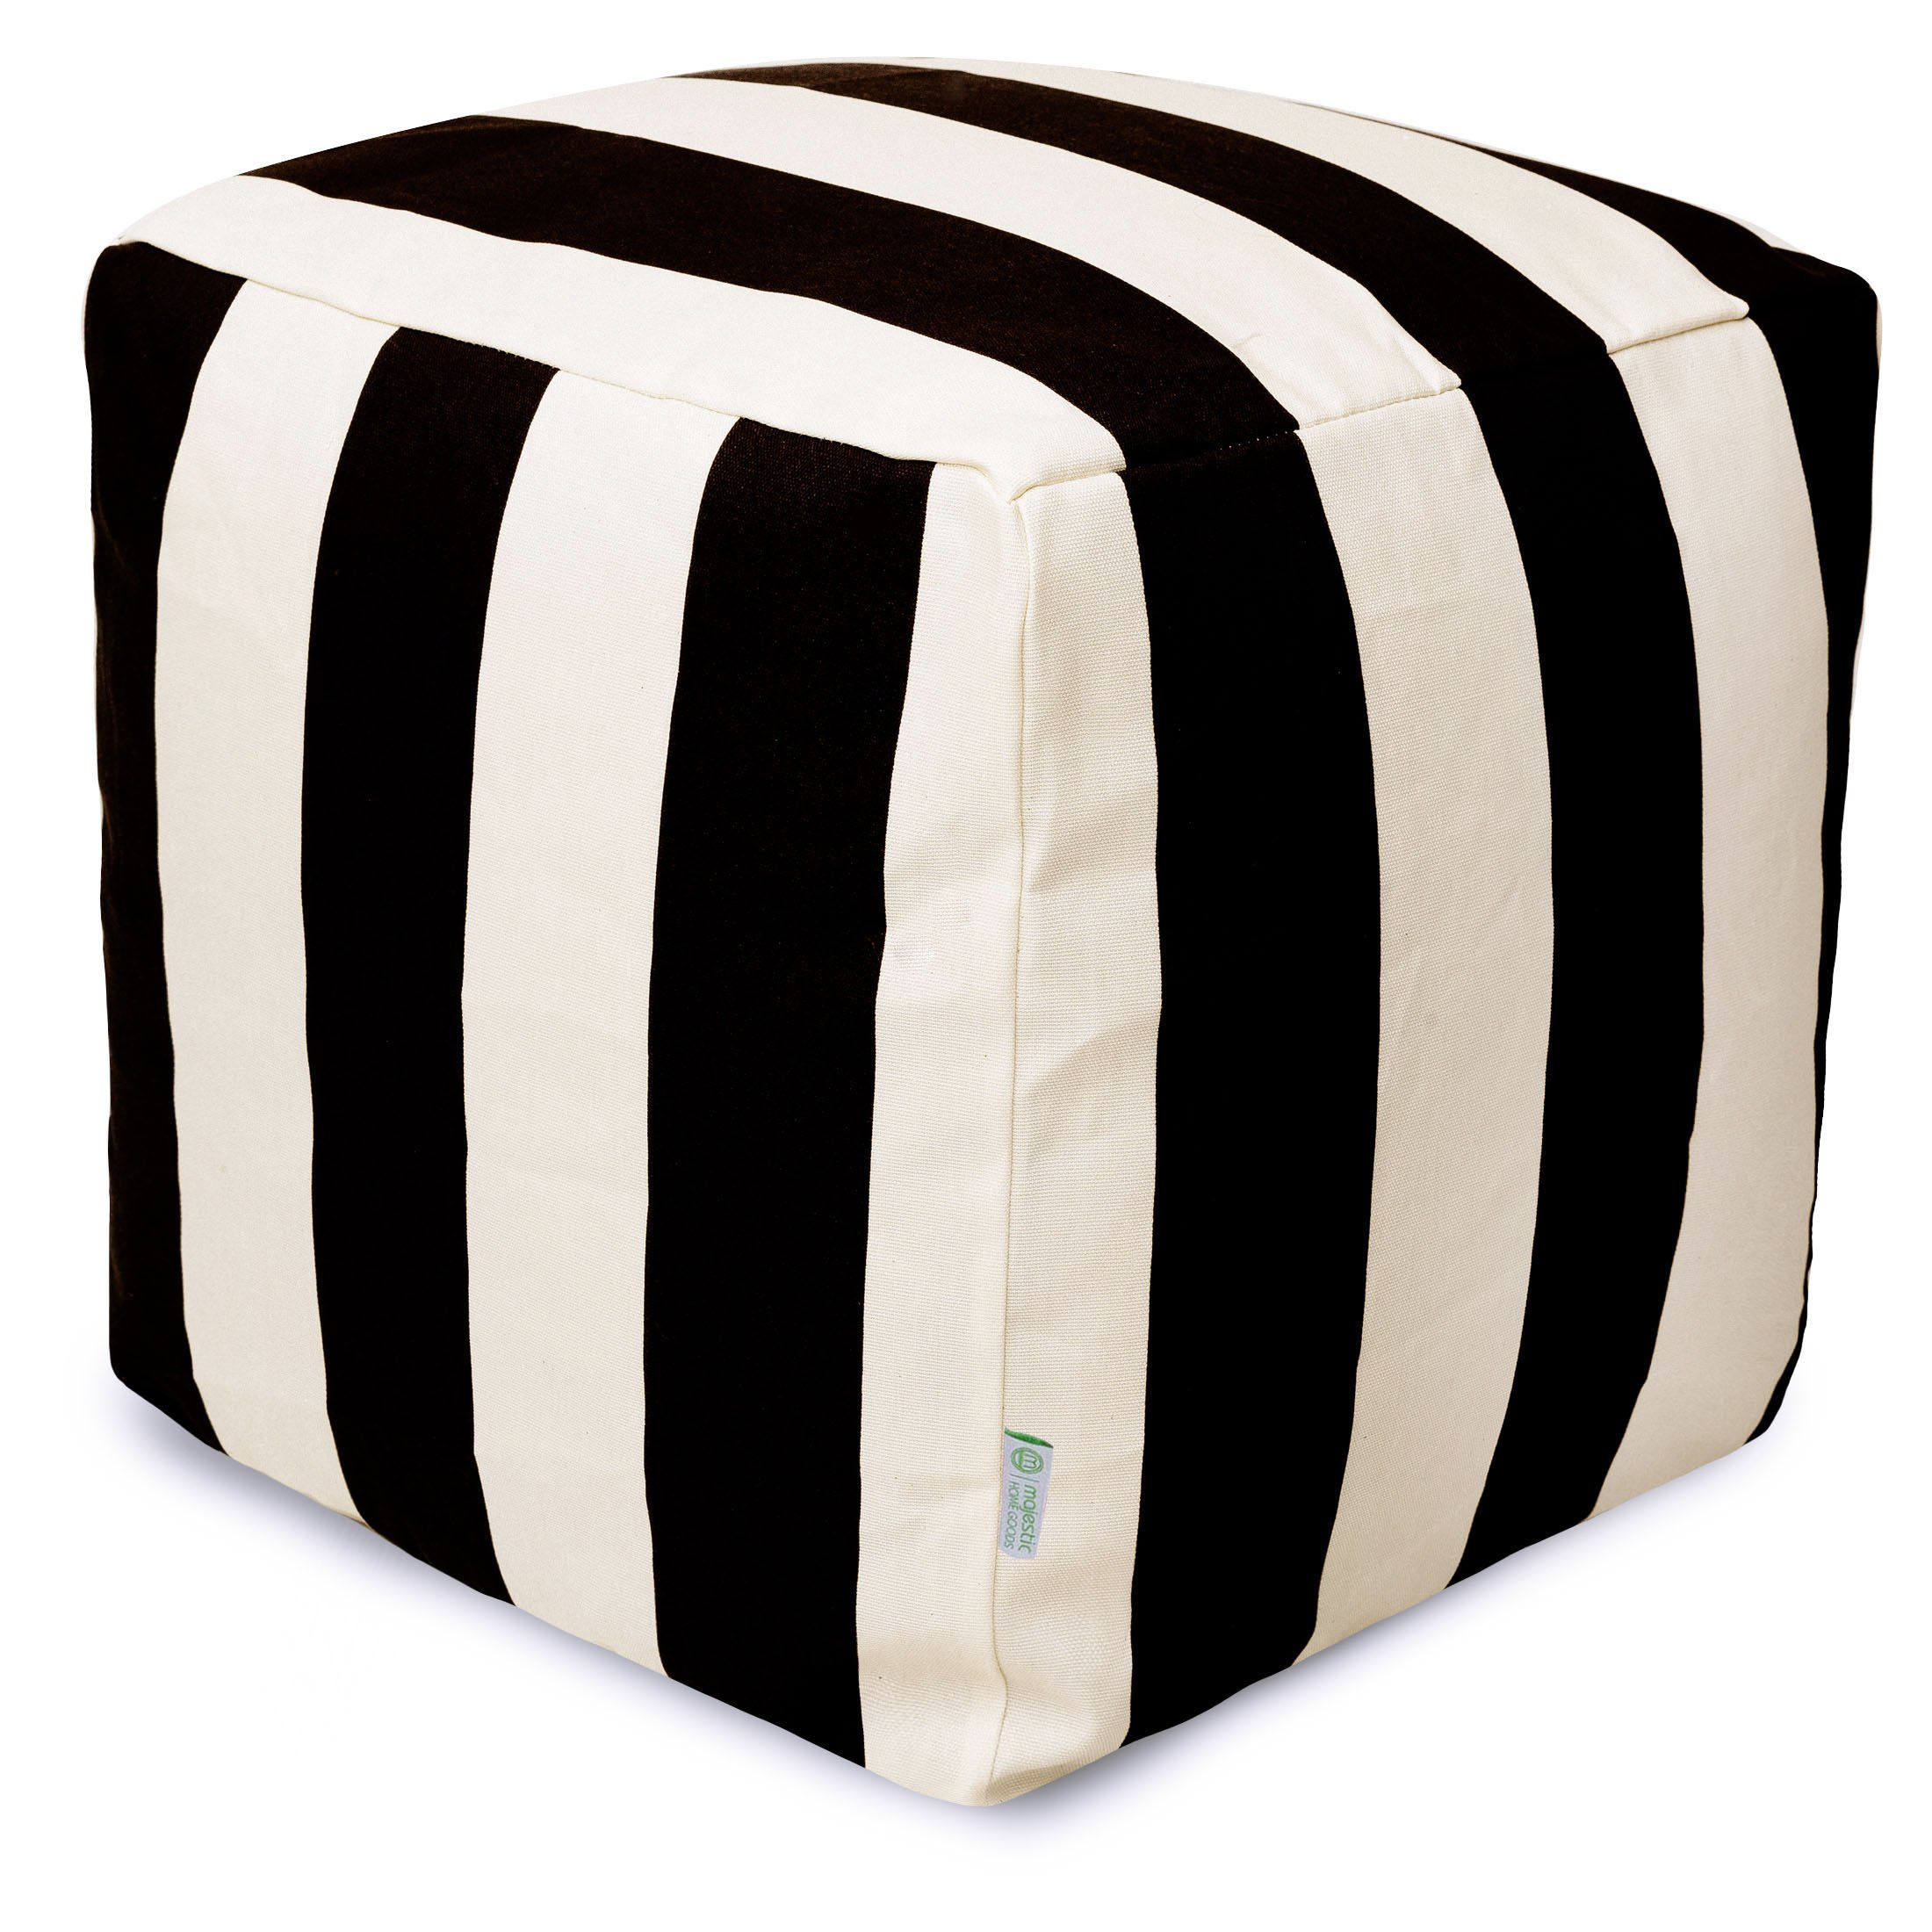 Majestic Home Goods Black Vertical Stripe Indoor / Outdoor Bean Bag Ottoman Pouf Cube 17'' L x 17'' W x 17'' H by Majestic Home Goods